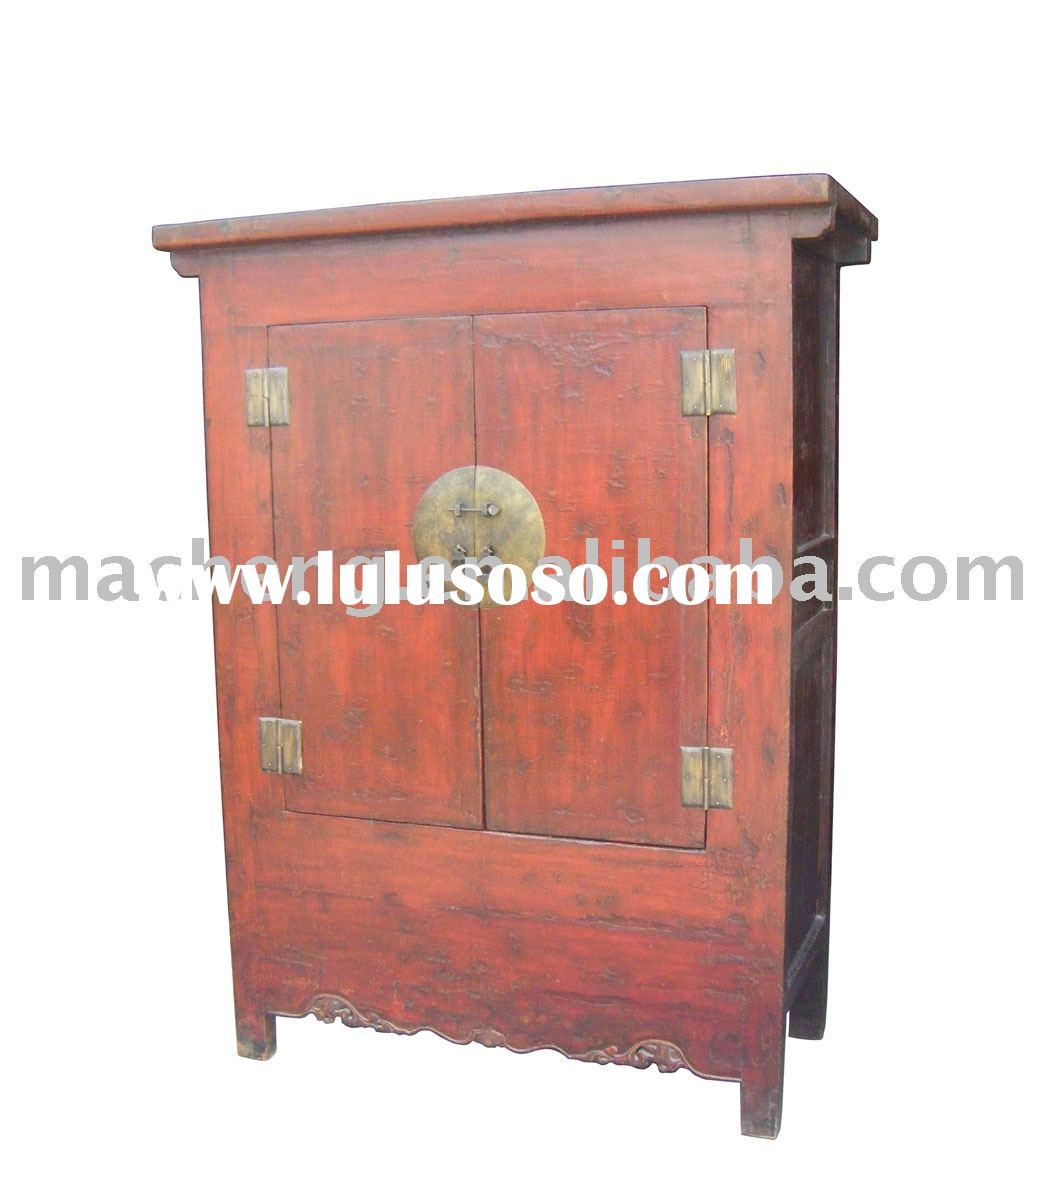 Antique & Reproduction Furniture, Cabinets & Chests, Chinese Antique Big Cabinet